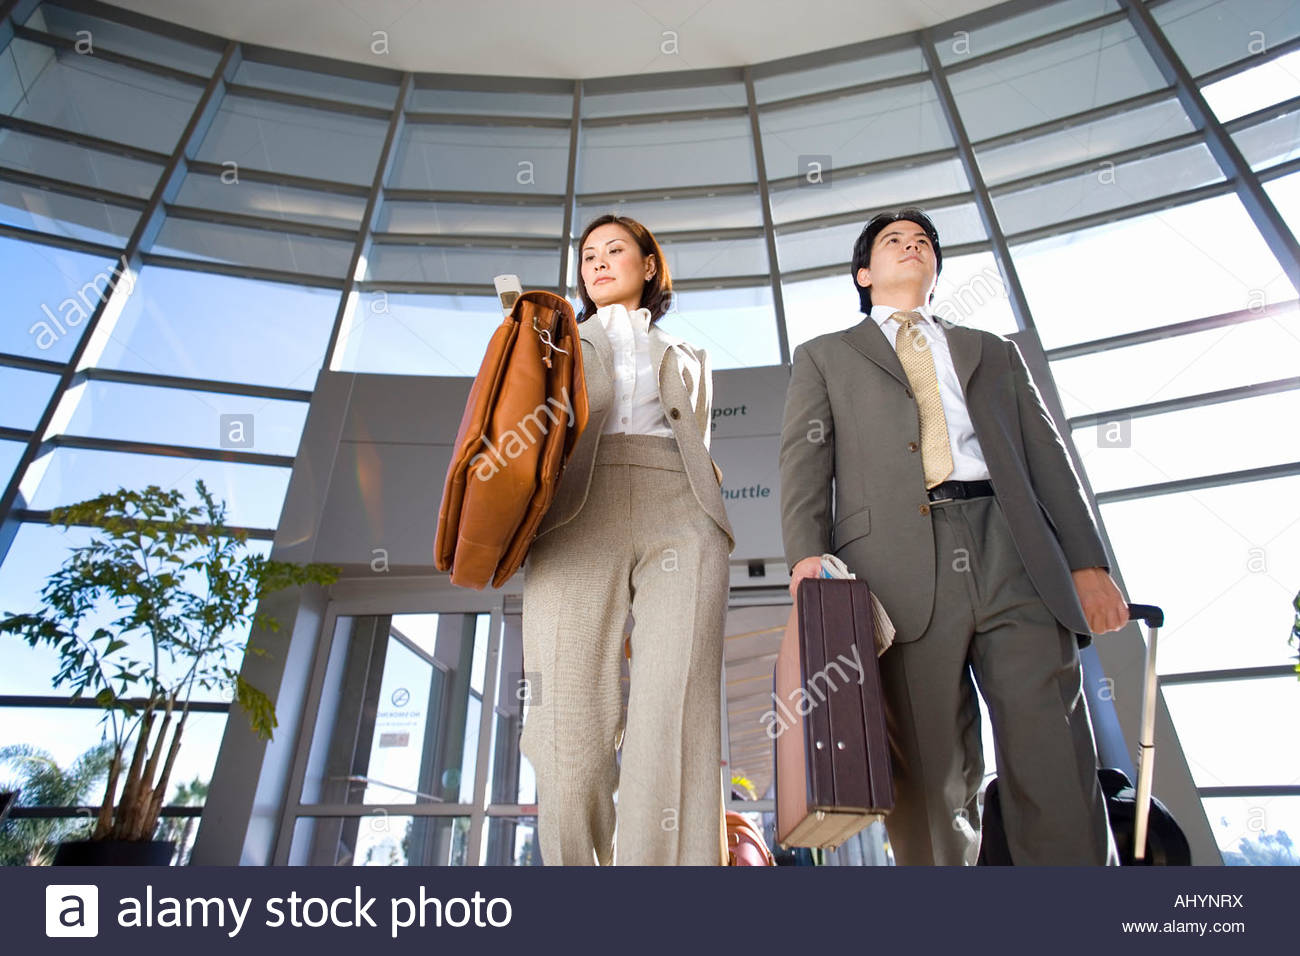 Businessman and woman walking with luggage in tow in airport, building entrance in background, front view, low angle - Stock Image